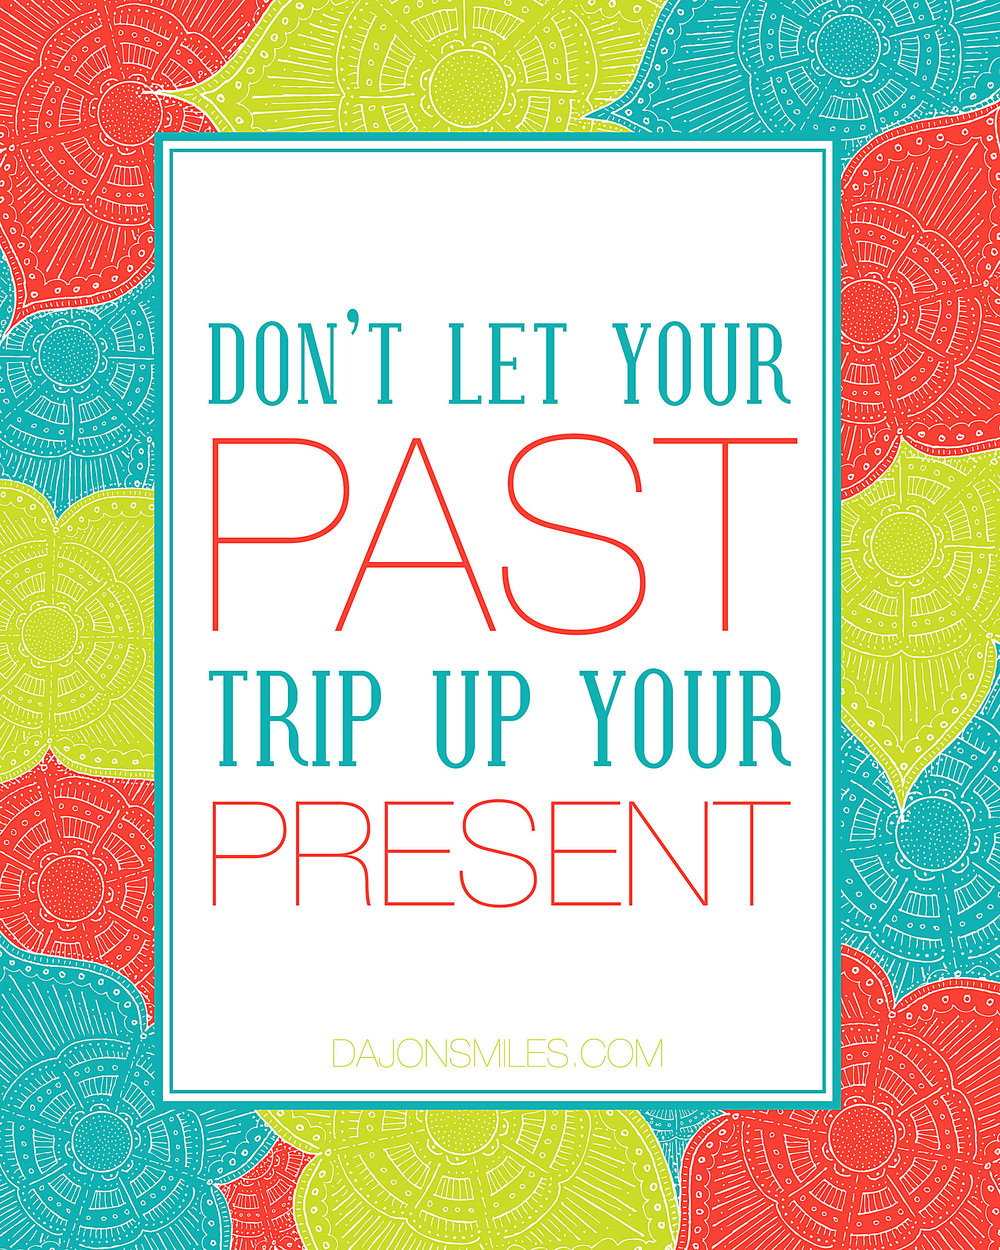 Don't let your past.jpg